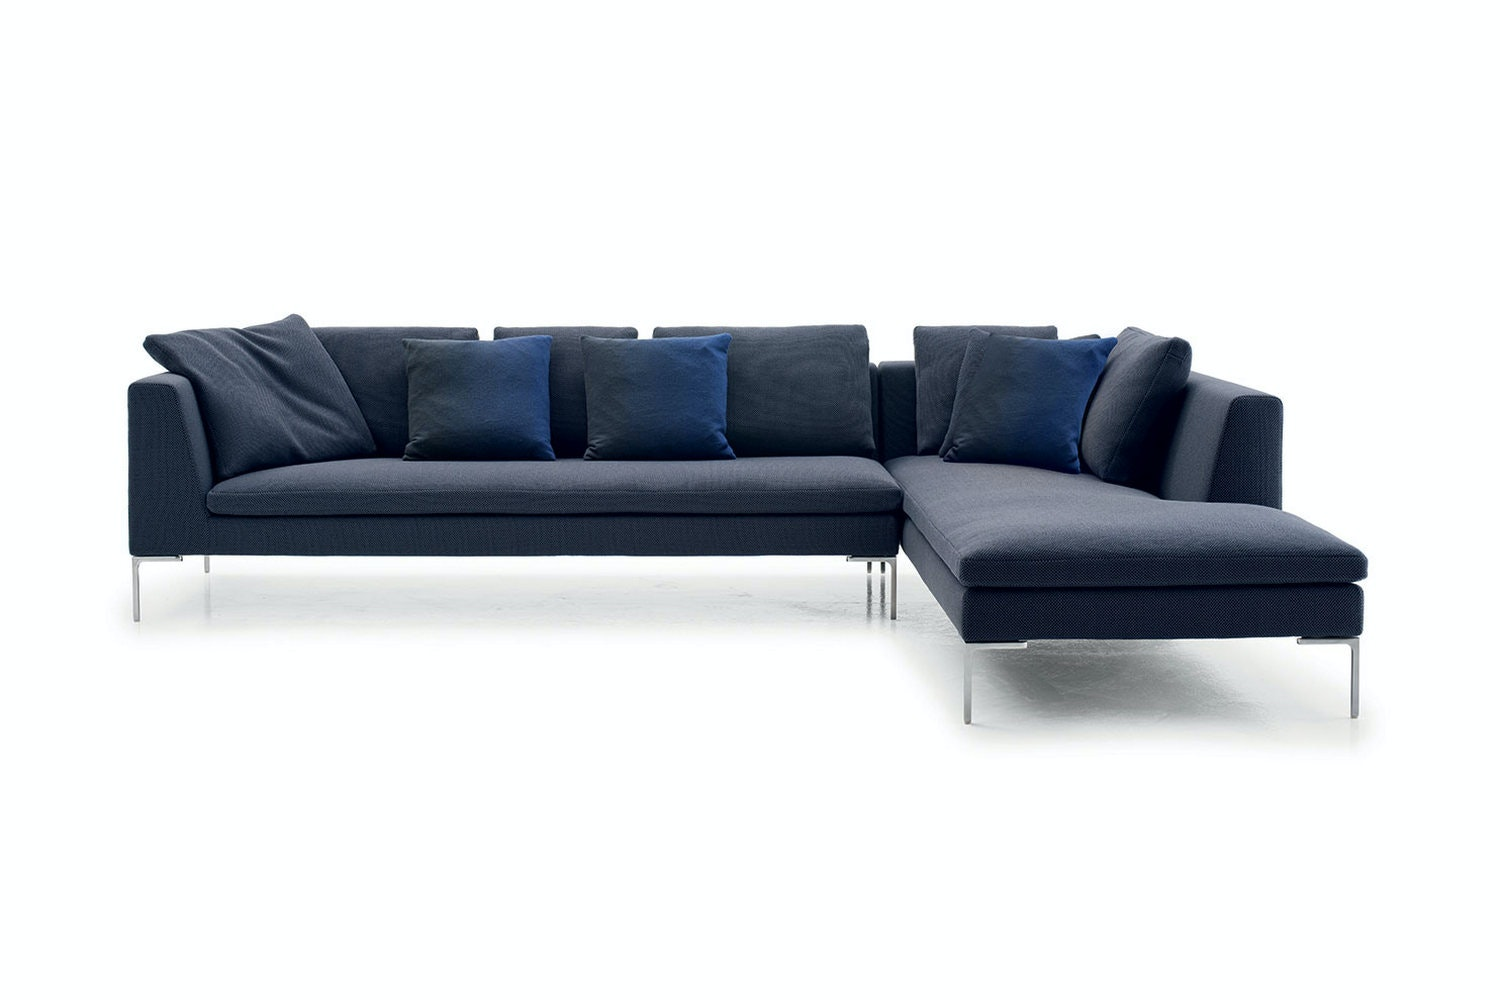 Charles 20 Sofa by Antonio Citterio for B&B Italia